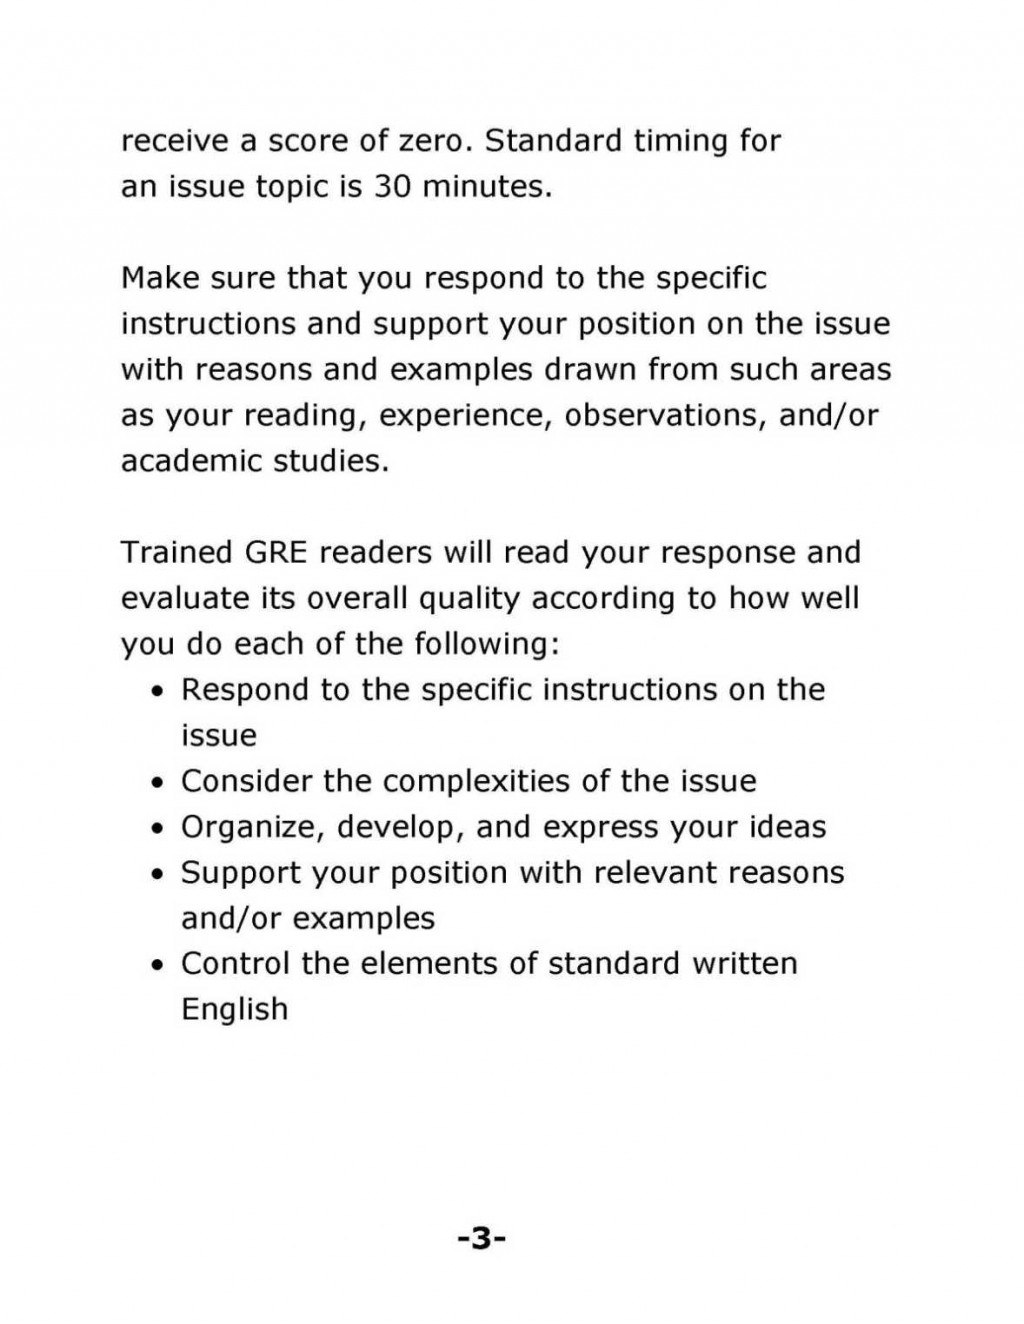 027 Essay Example Sample Gre Test Papers With Solutions Unusual Issue 6 Prompts Ets Large